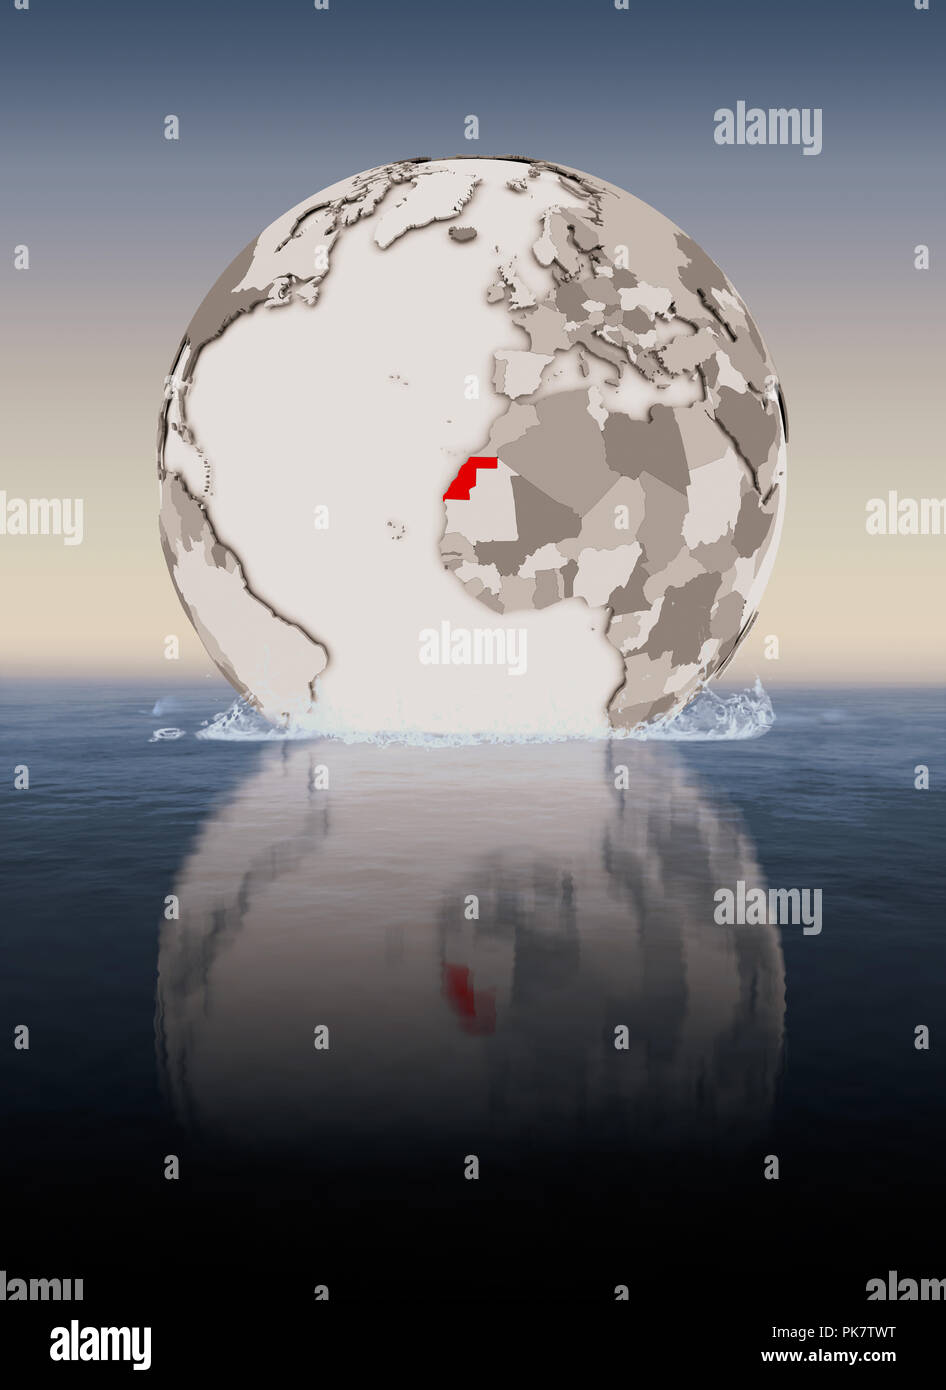 Western Sahara In red on globe floating in water. 3D illustration. - Stock Image